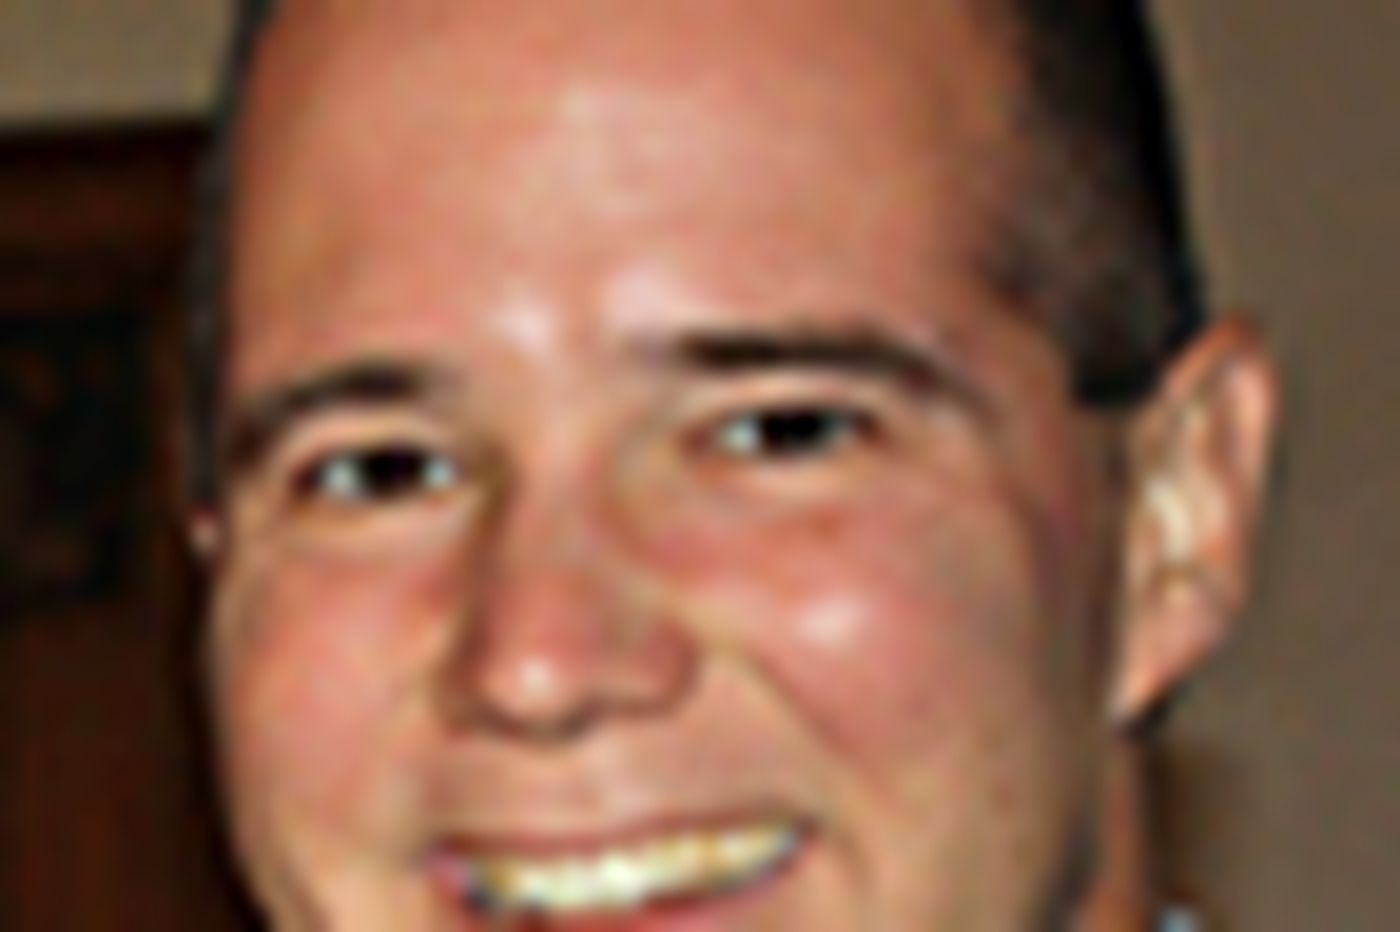 Daniel Adam Schultz, 38; civil engineer was active in sports